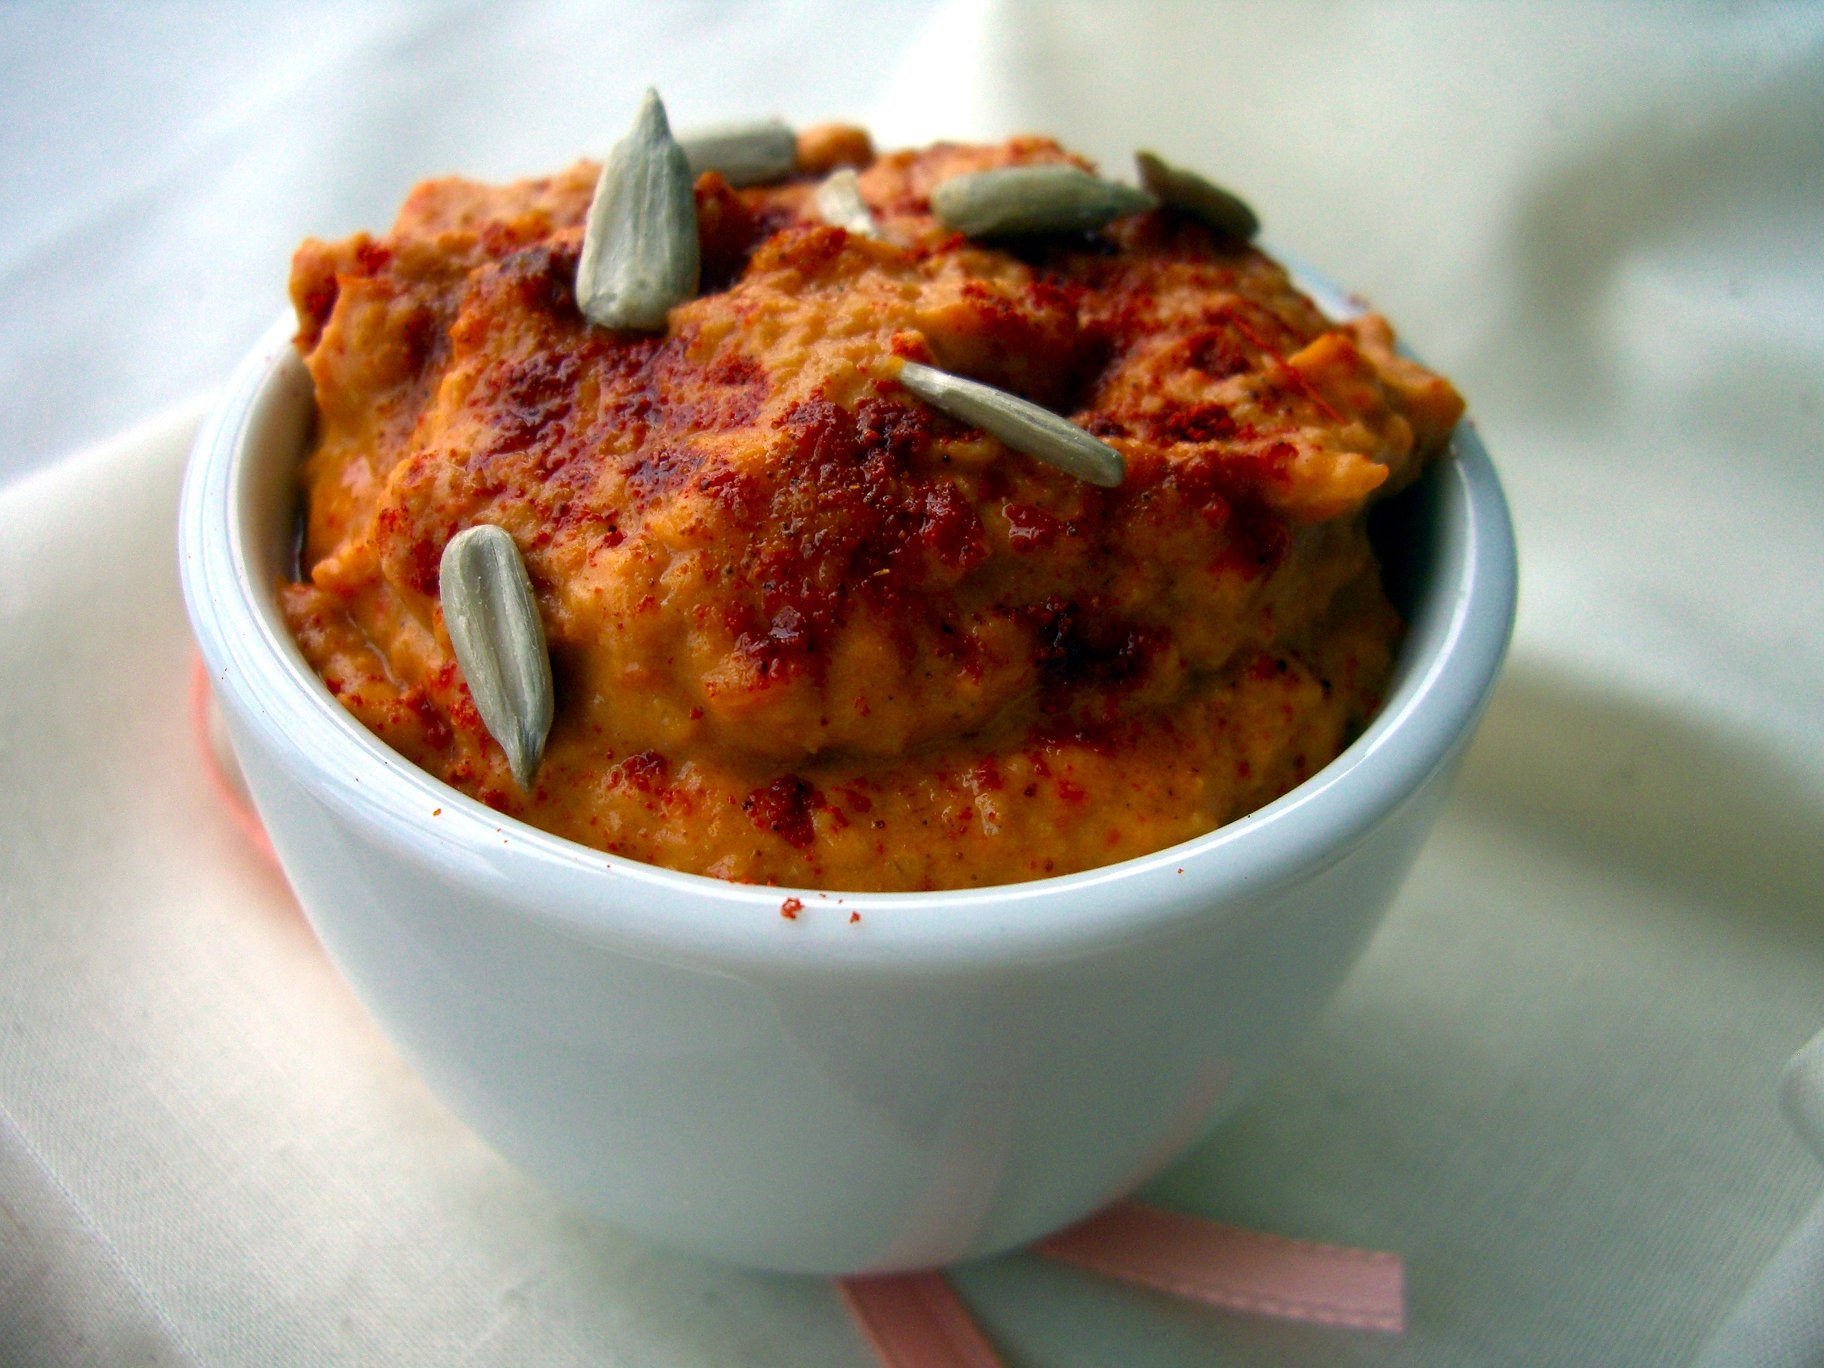 Roasted Red Pepper & Spice Hummus